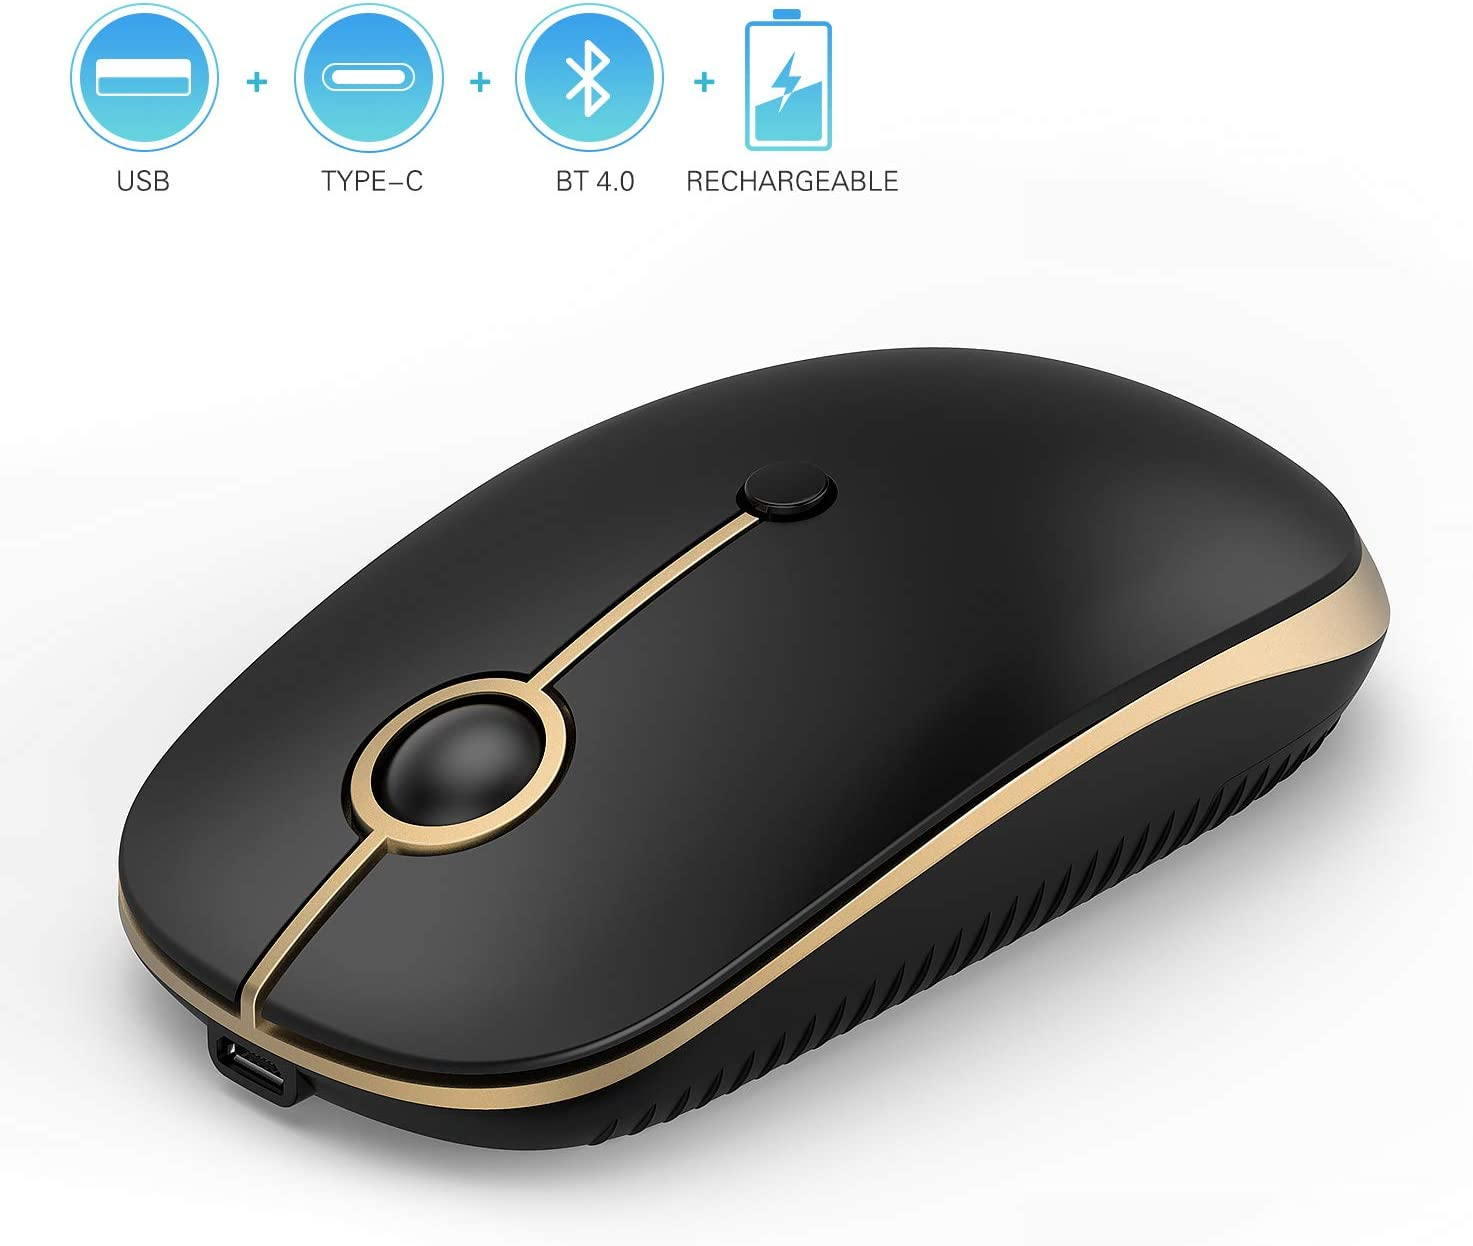 Rechargeable 2.4GHz Wireless Bluetooth Mouse, Jelly Comb Slim Noiseless Optical Wireless Mouse with Bluetooth, USB or Type C Connection,Easy-Switch up to 3 Device MS04